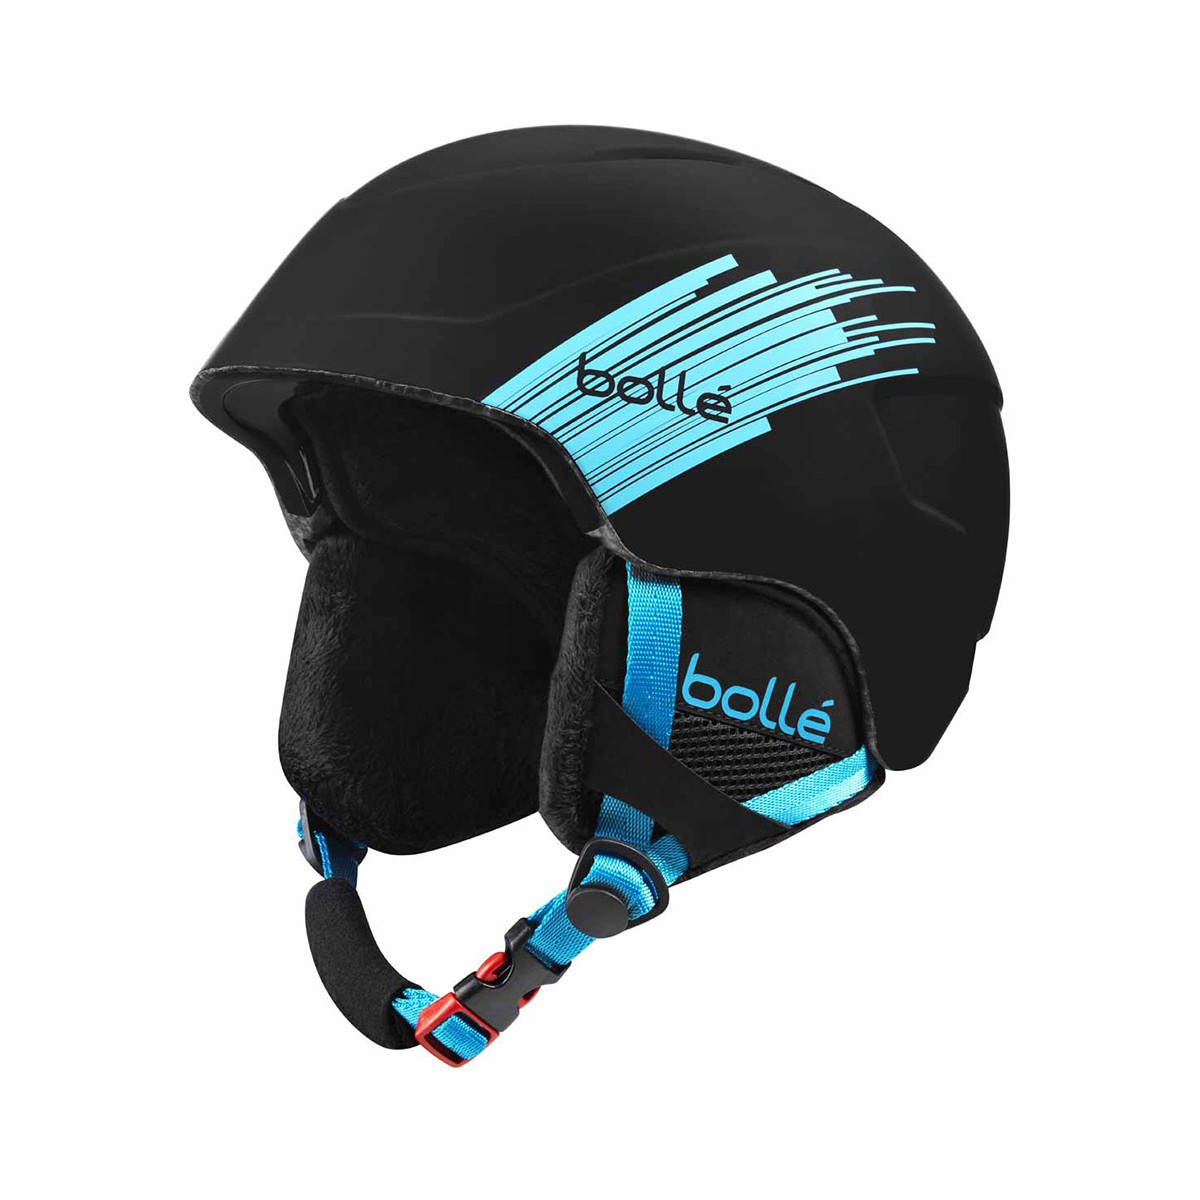 casque de ski b lieve bolle sports d 39 hiver inuka. Black Bedroom Furniture Sets. Home Design Ideas